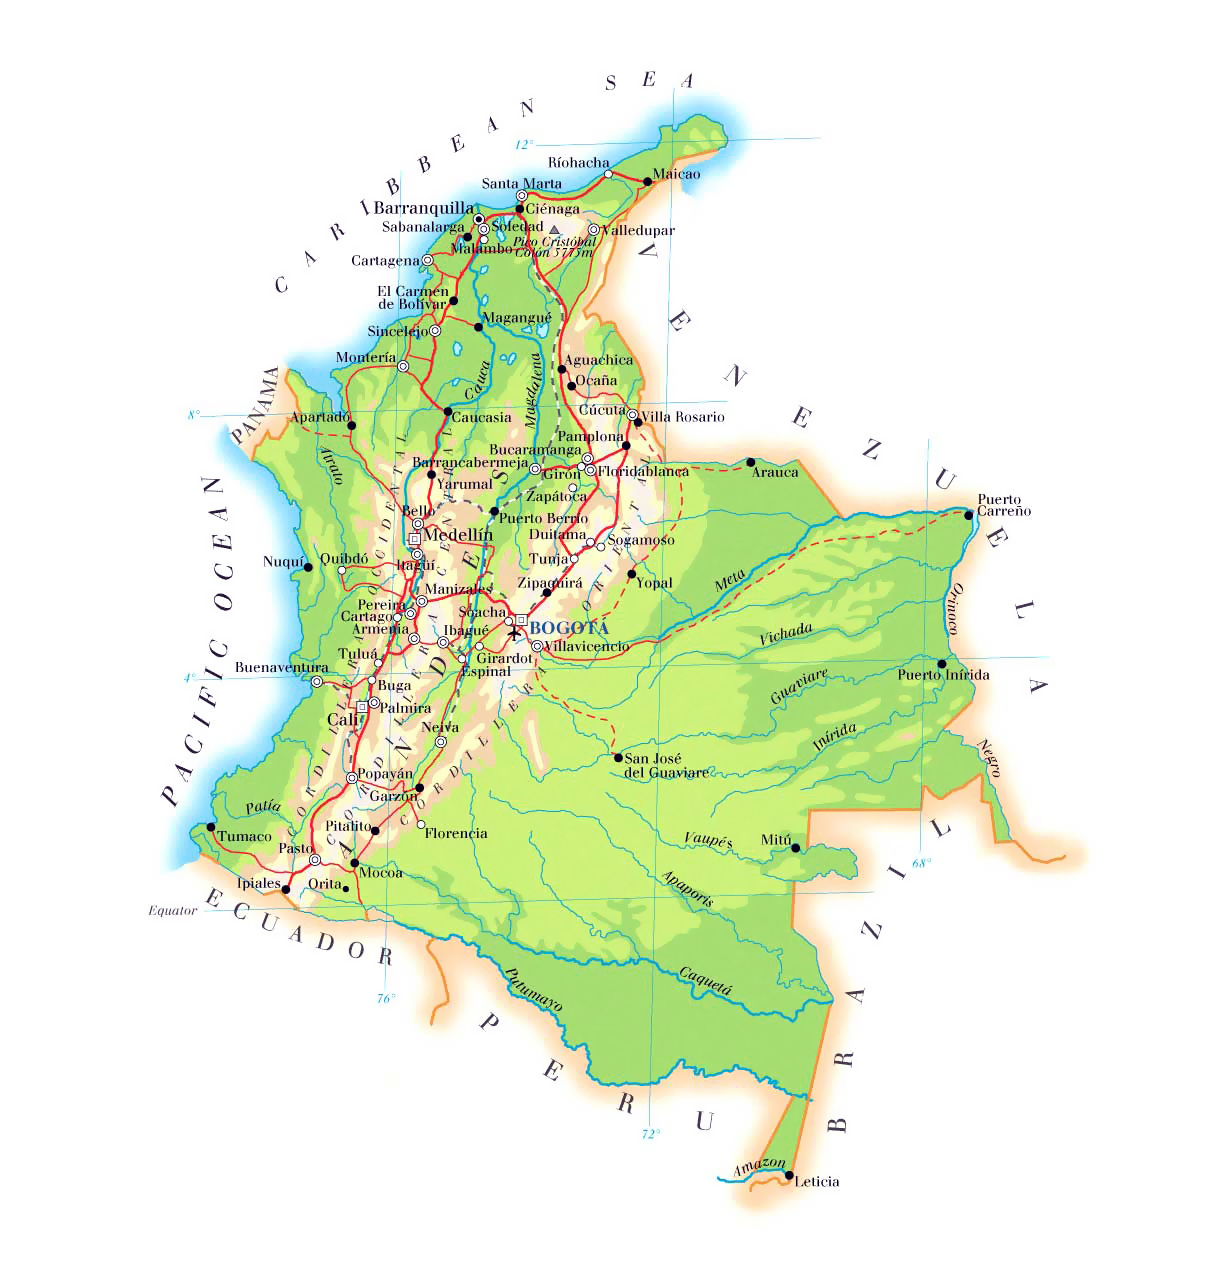 Large elevation map of Colombia with roads, cities and airports